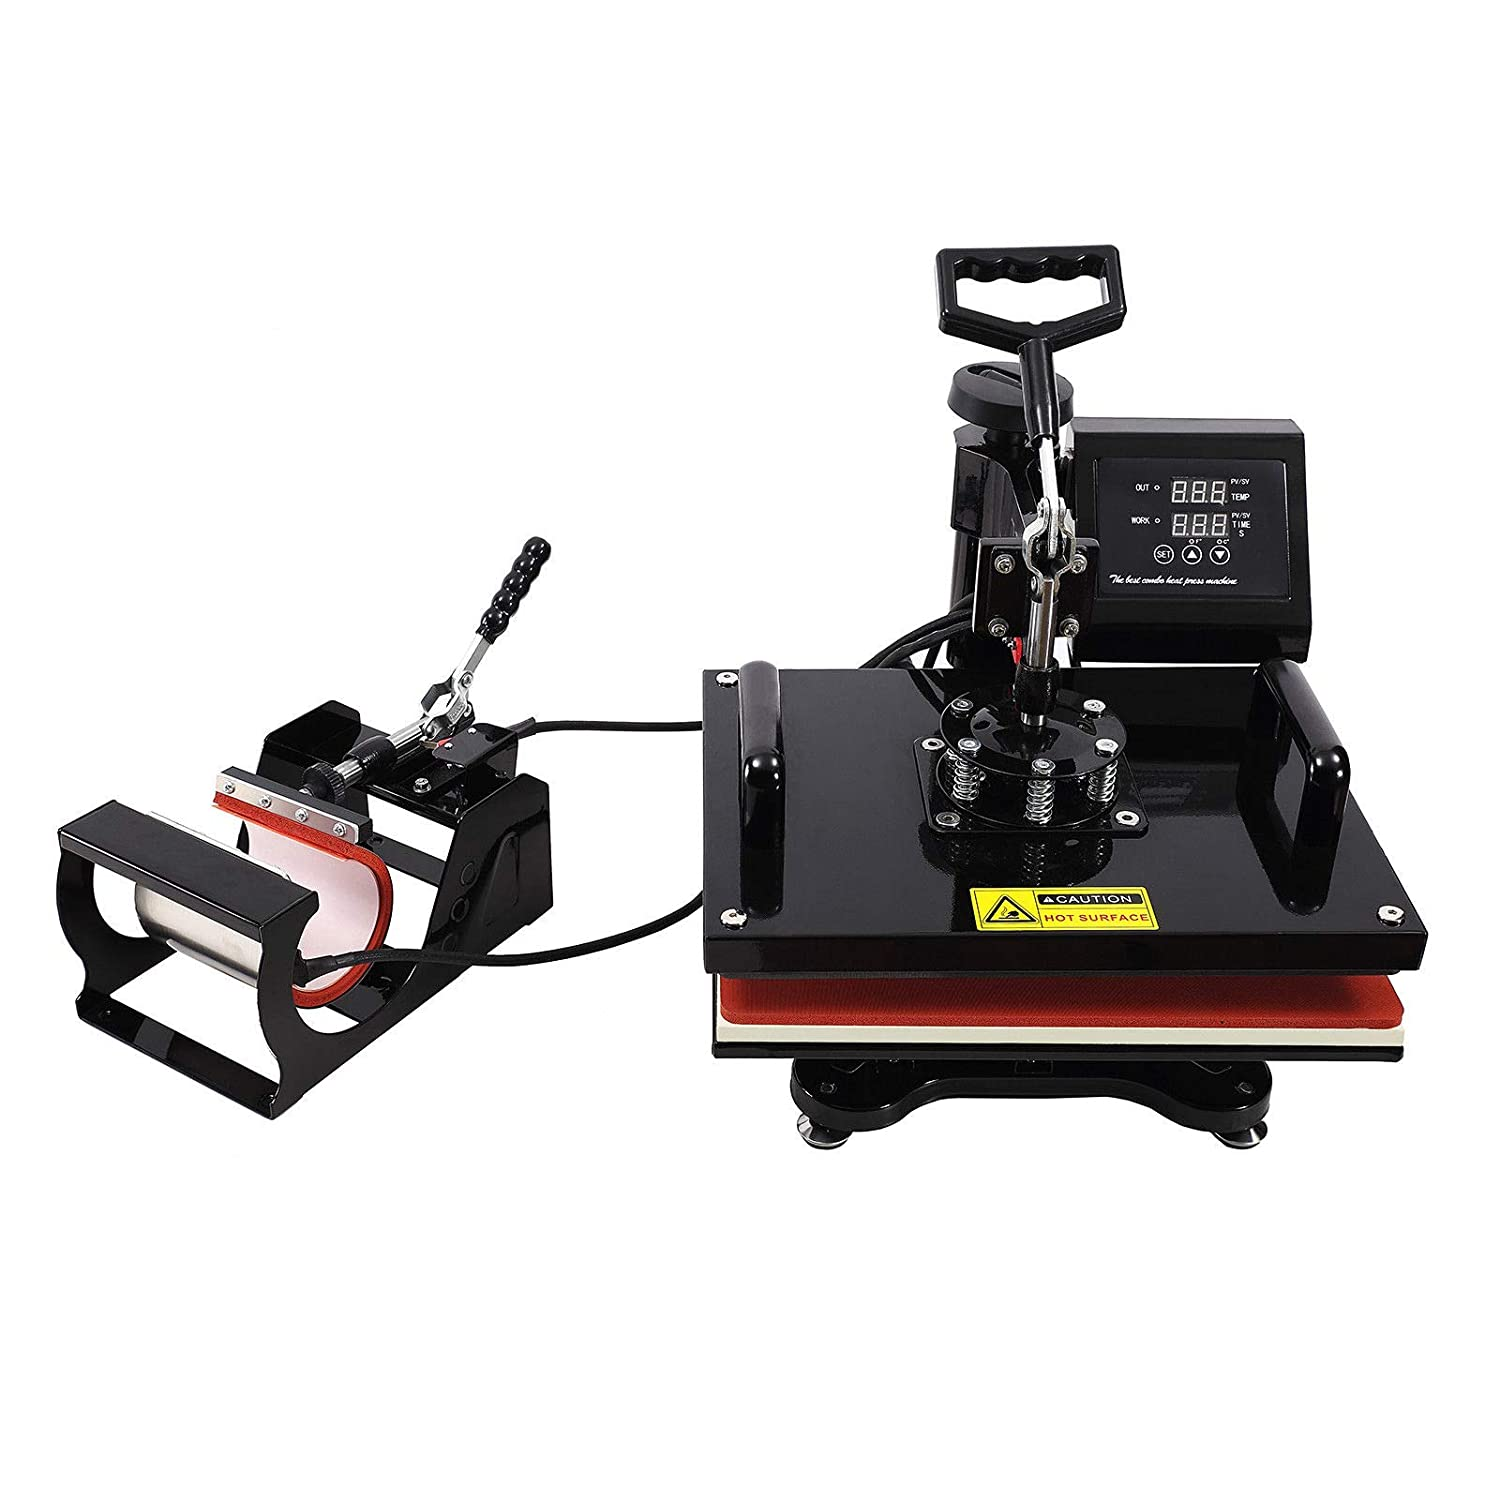 6 in 1 Heat Press Machine Sublimation T-shirt mug cap Plate 12